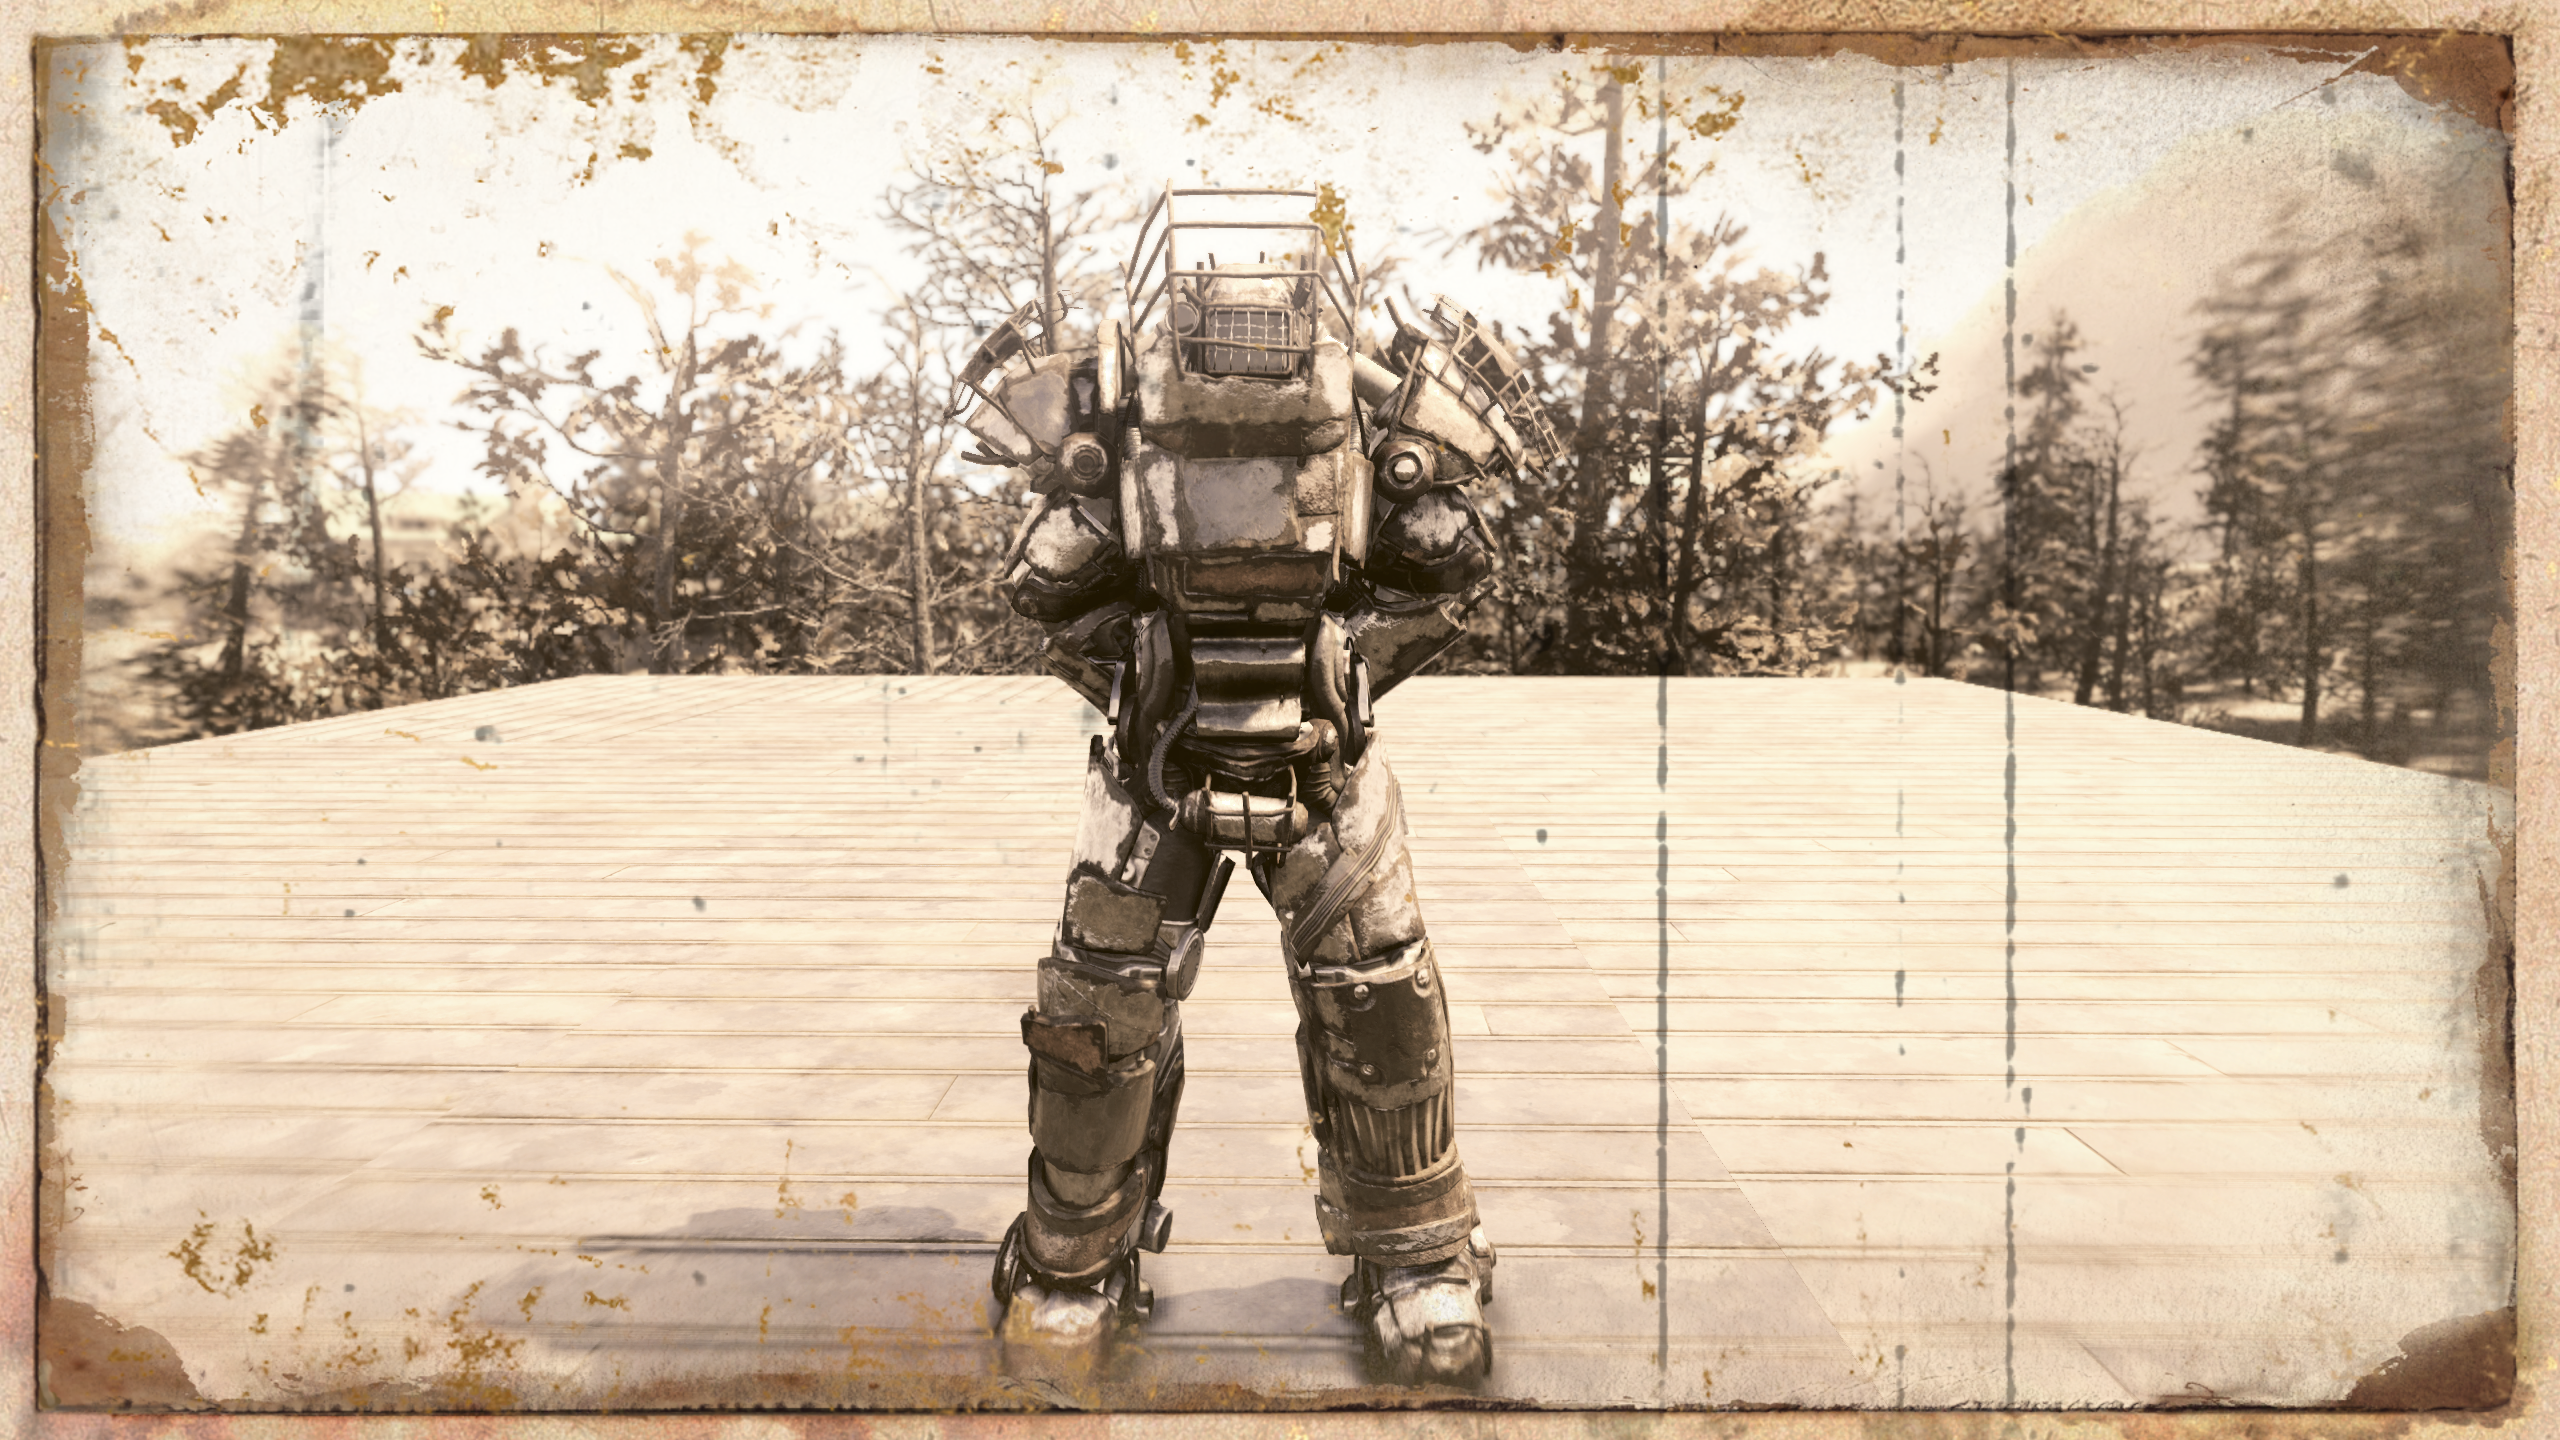 Fallout 76 | For newbies! Bow/Power Armor/Jetpack/Camp